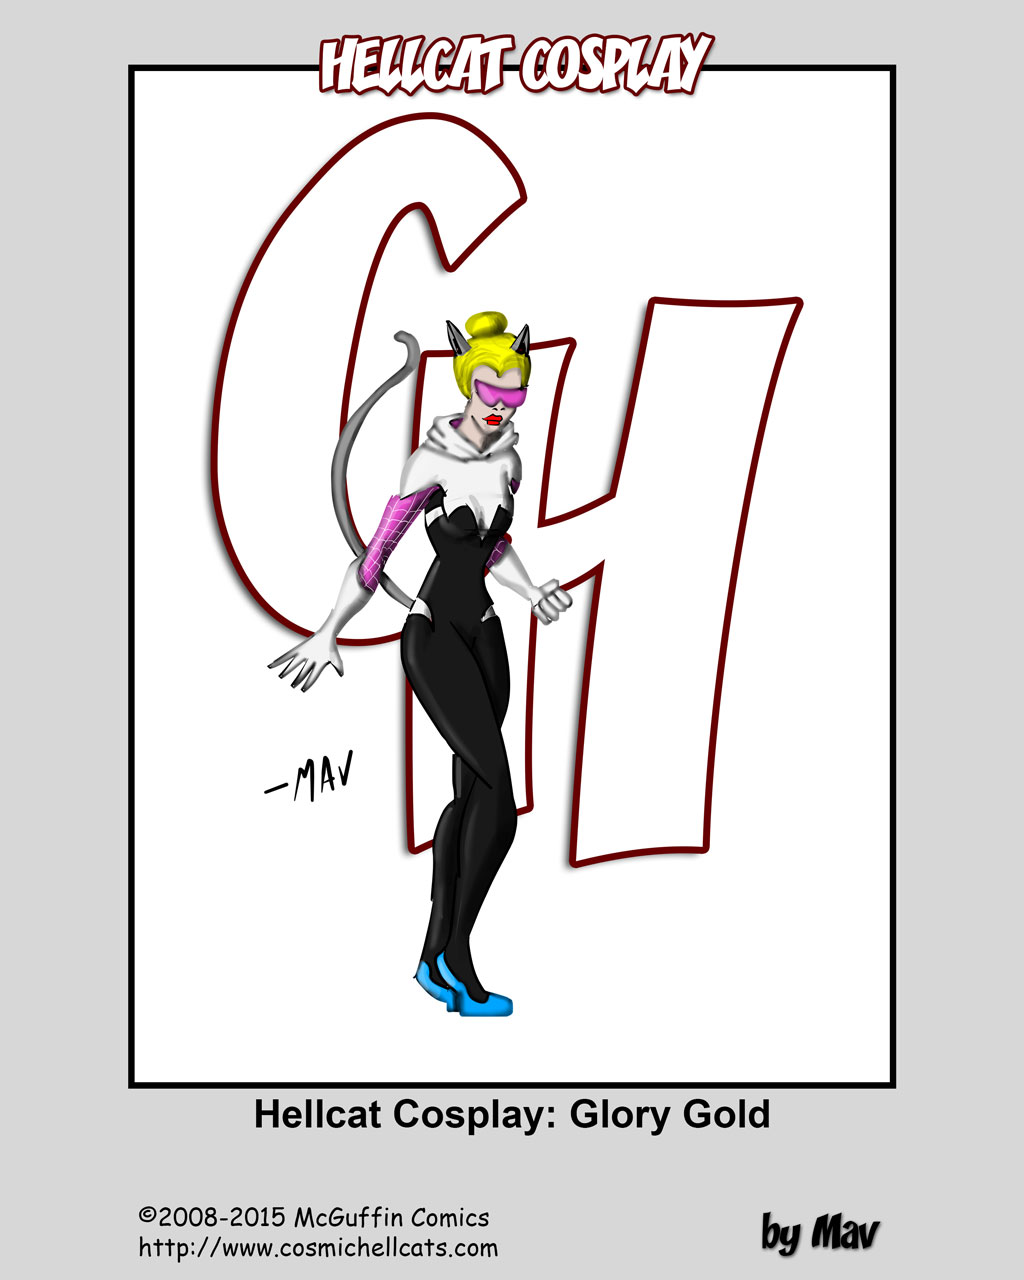 Hellcat Cosplay: Glory Gold